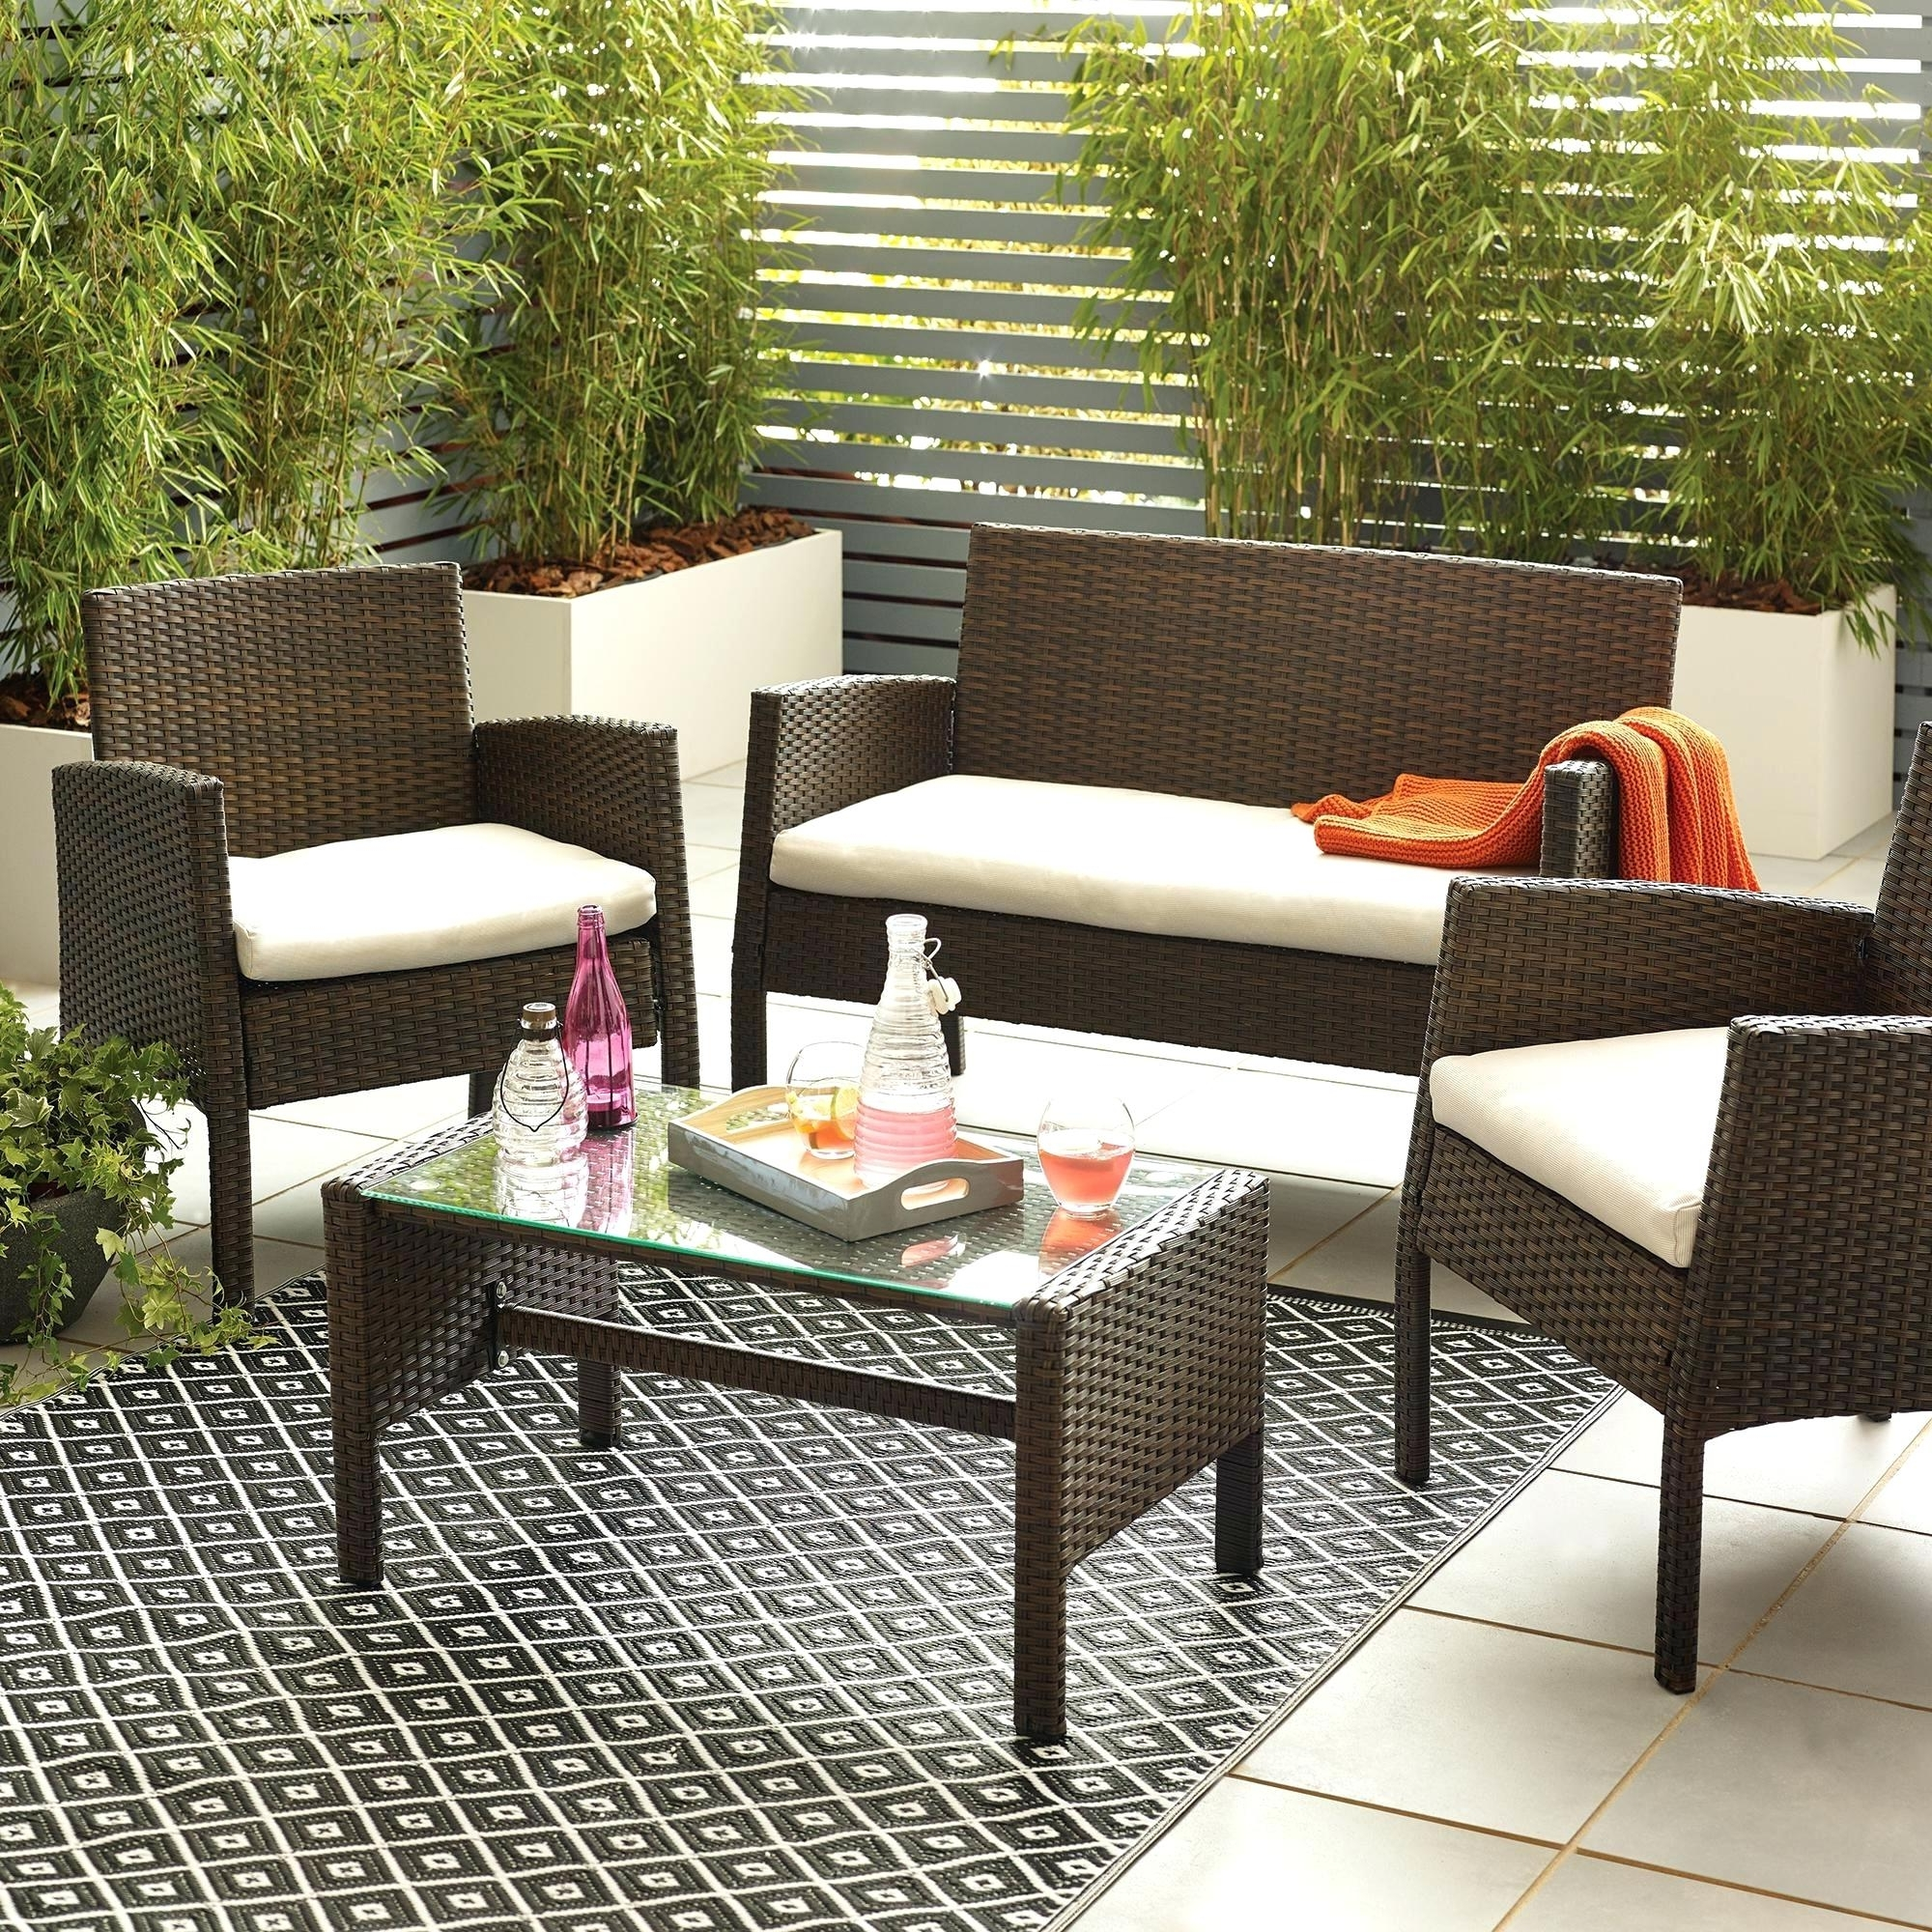 Fashionable Lowes Patio Furniture Conversation Sets Pertaining To Outdoor Furniture Conversation Sets Brown 4 Seat Conversation Set (View 6 of 15)